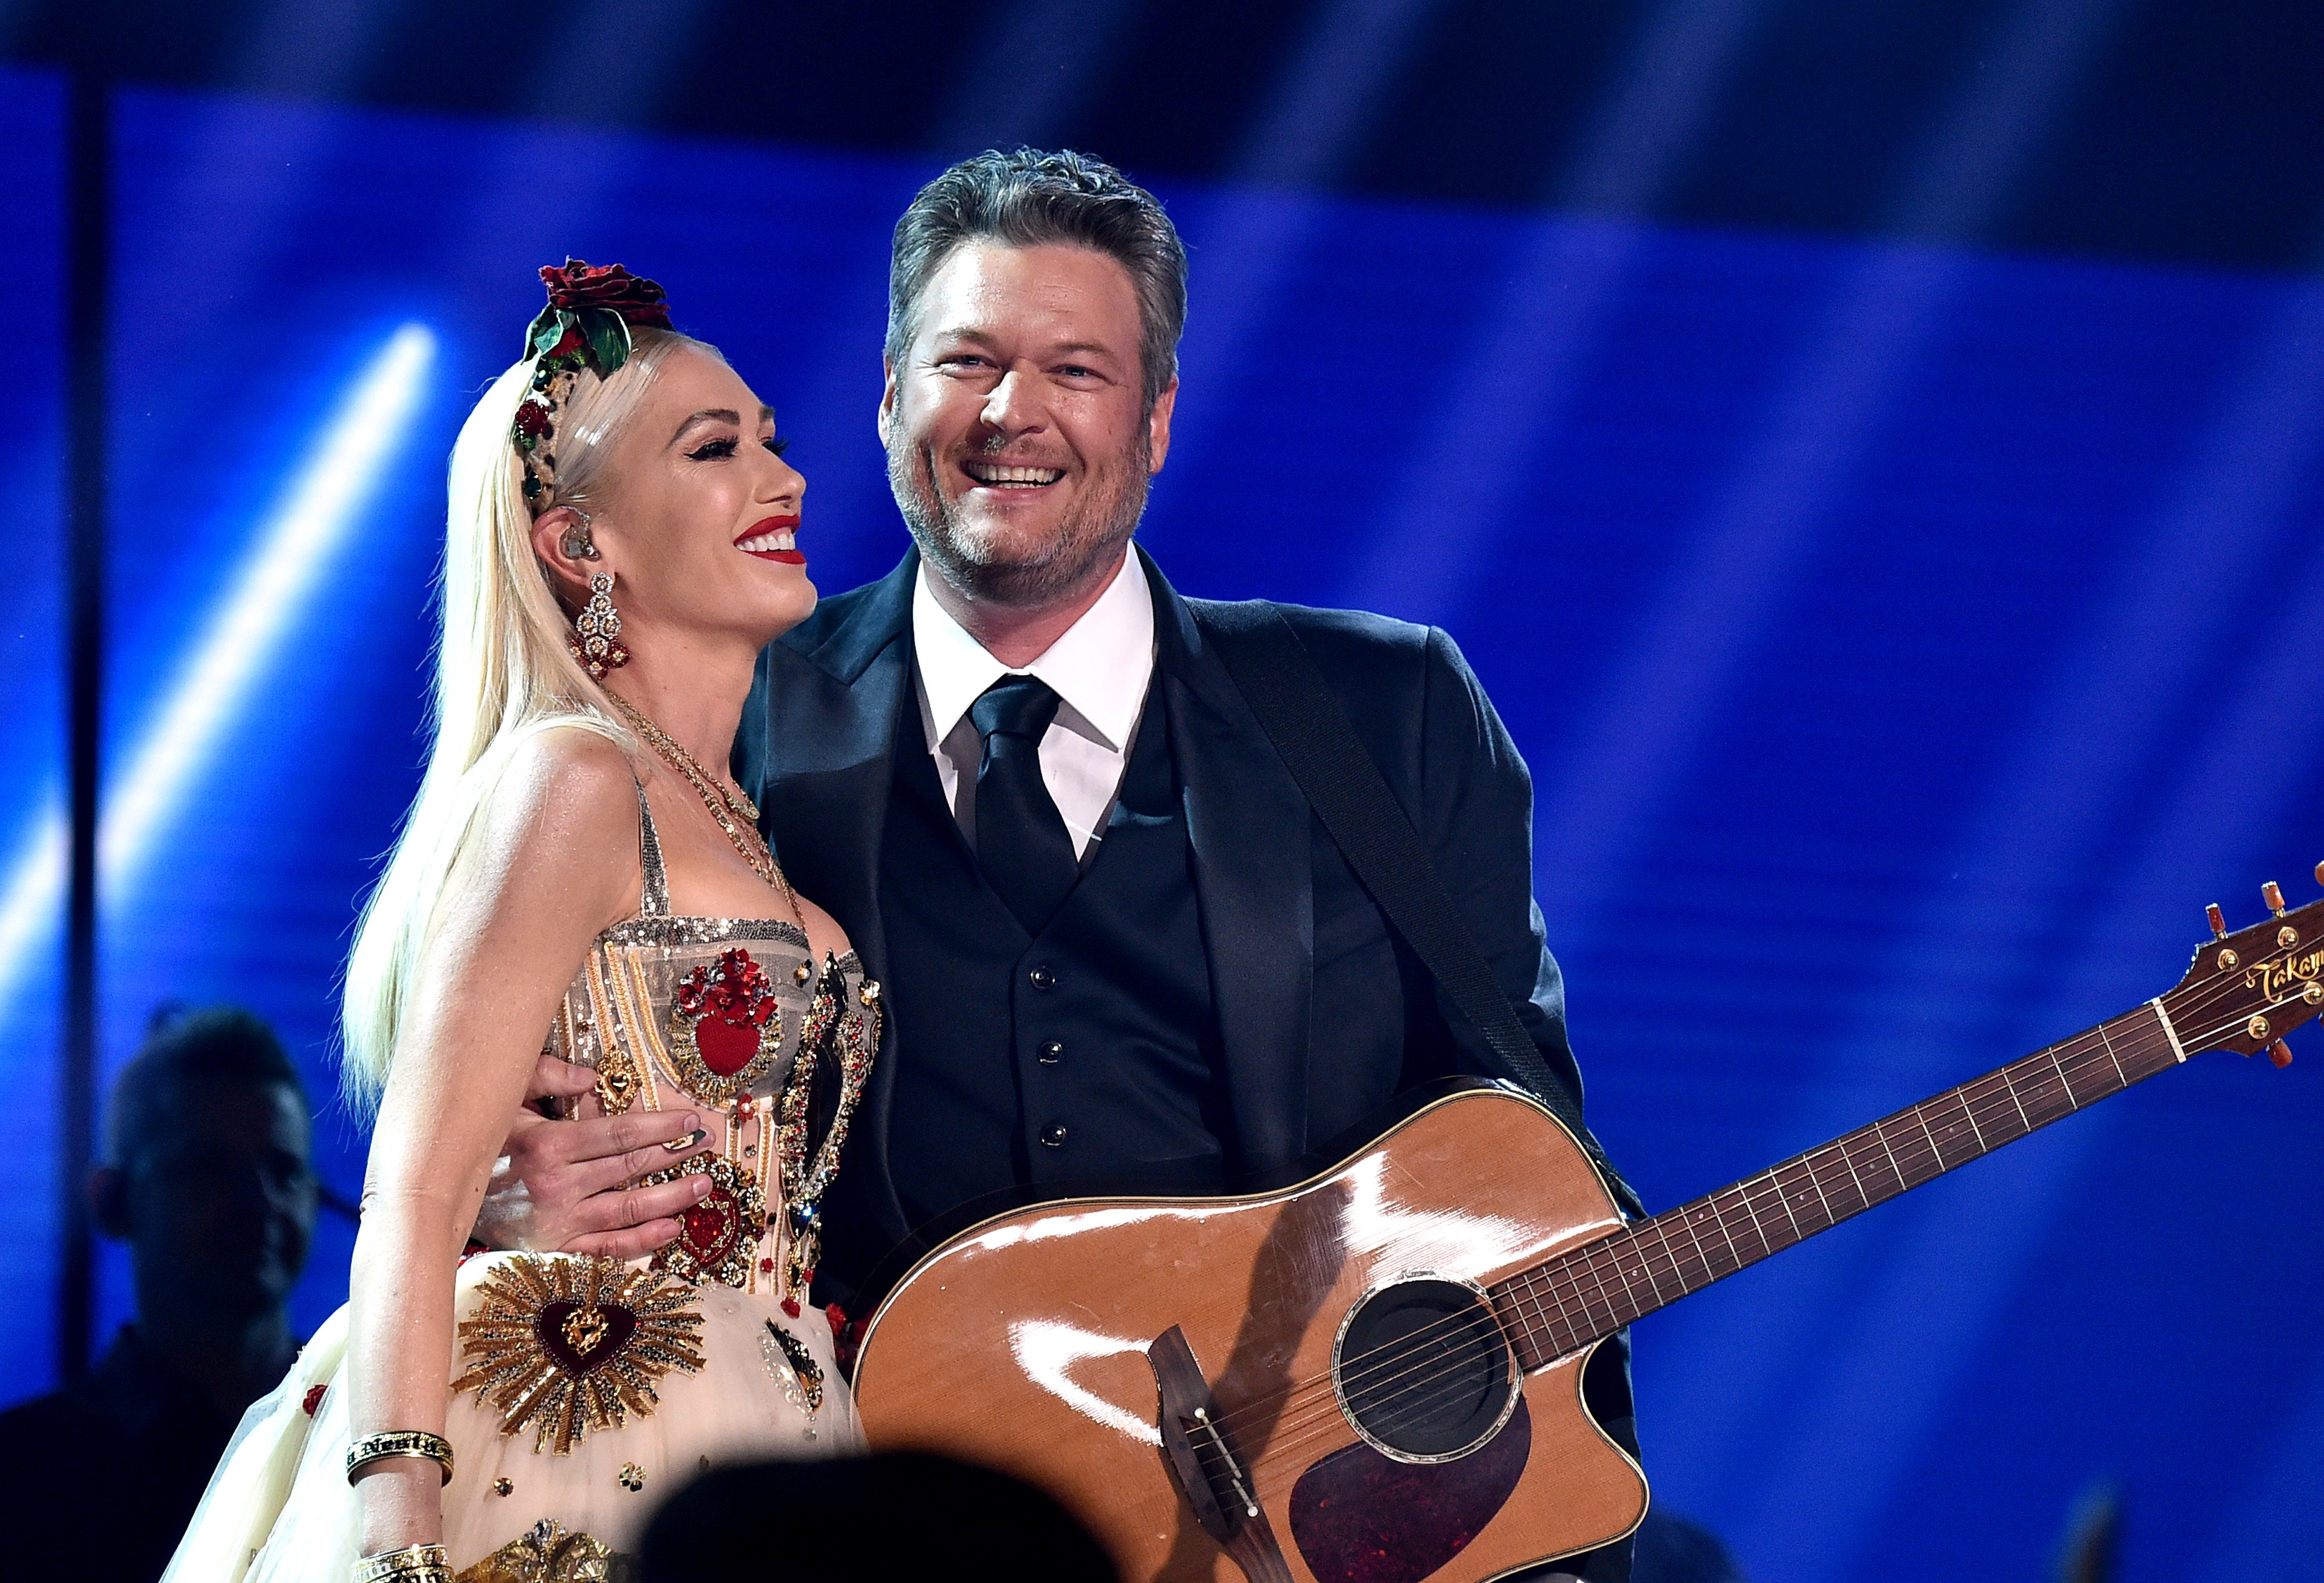 Gwen Stefani and Blake Shelton perform at the 62nd Annual Grammy Awards on January 26, 2020, in Los Angeles, California. | Source: Getty Images